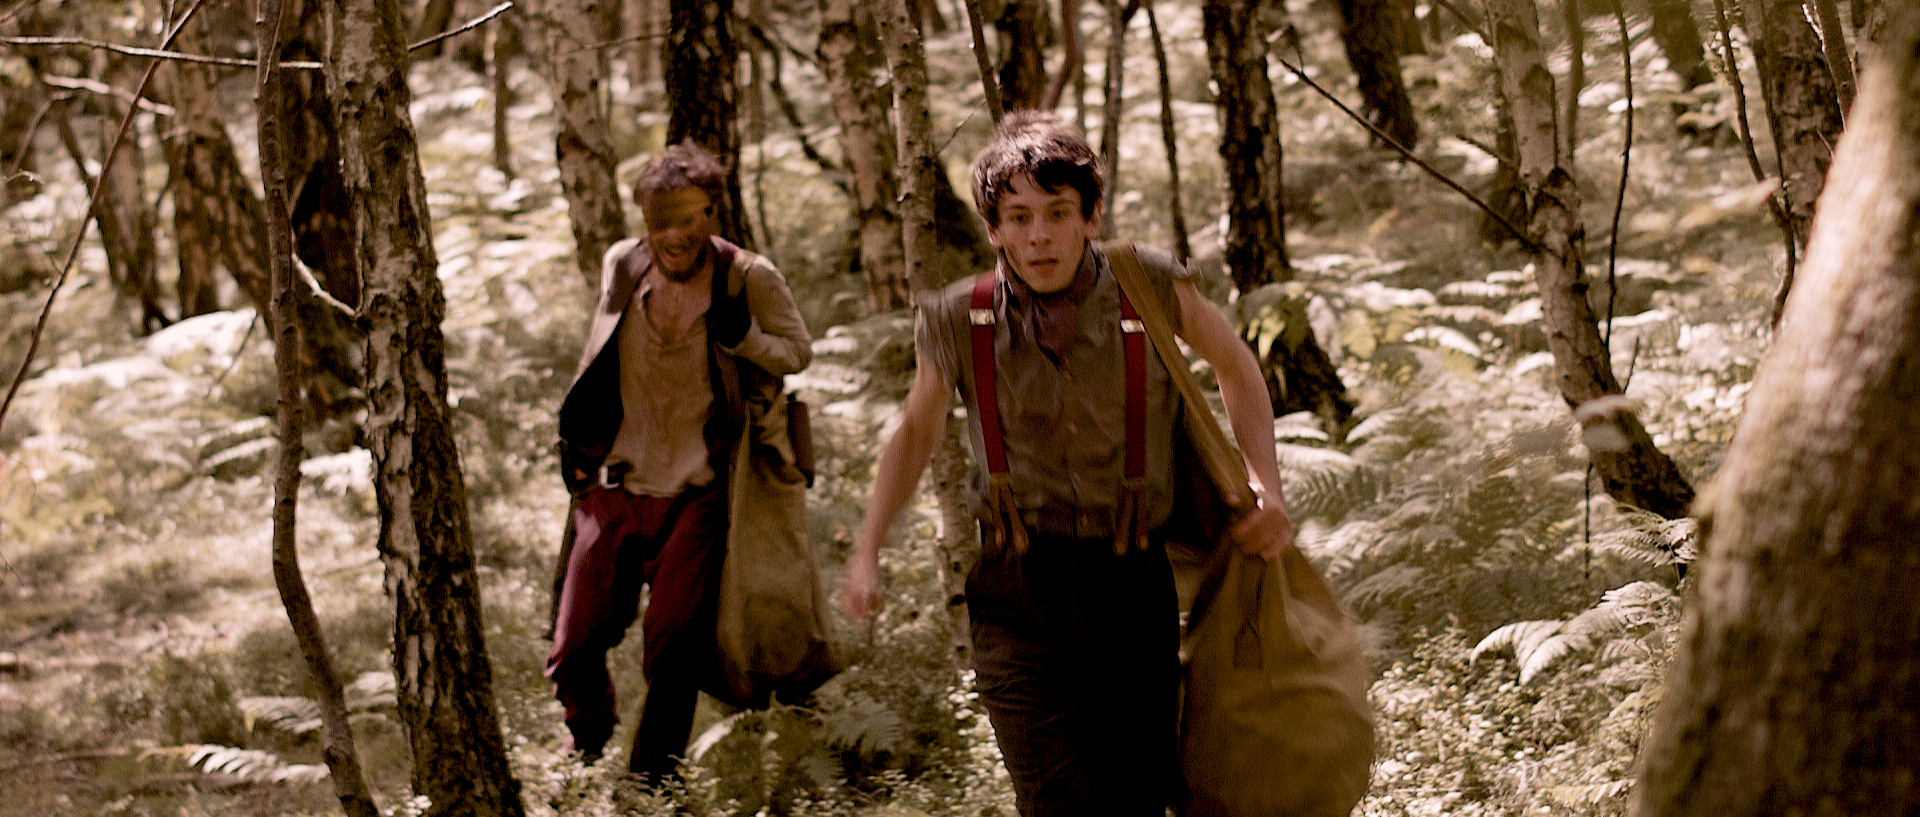 DSR - 'Nugget' and 'Clay' (Jerome Thompson and Joe Newton) run through the twisted forest-42.jpg